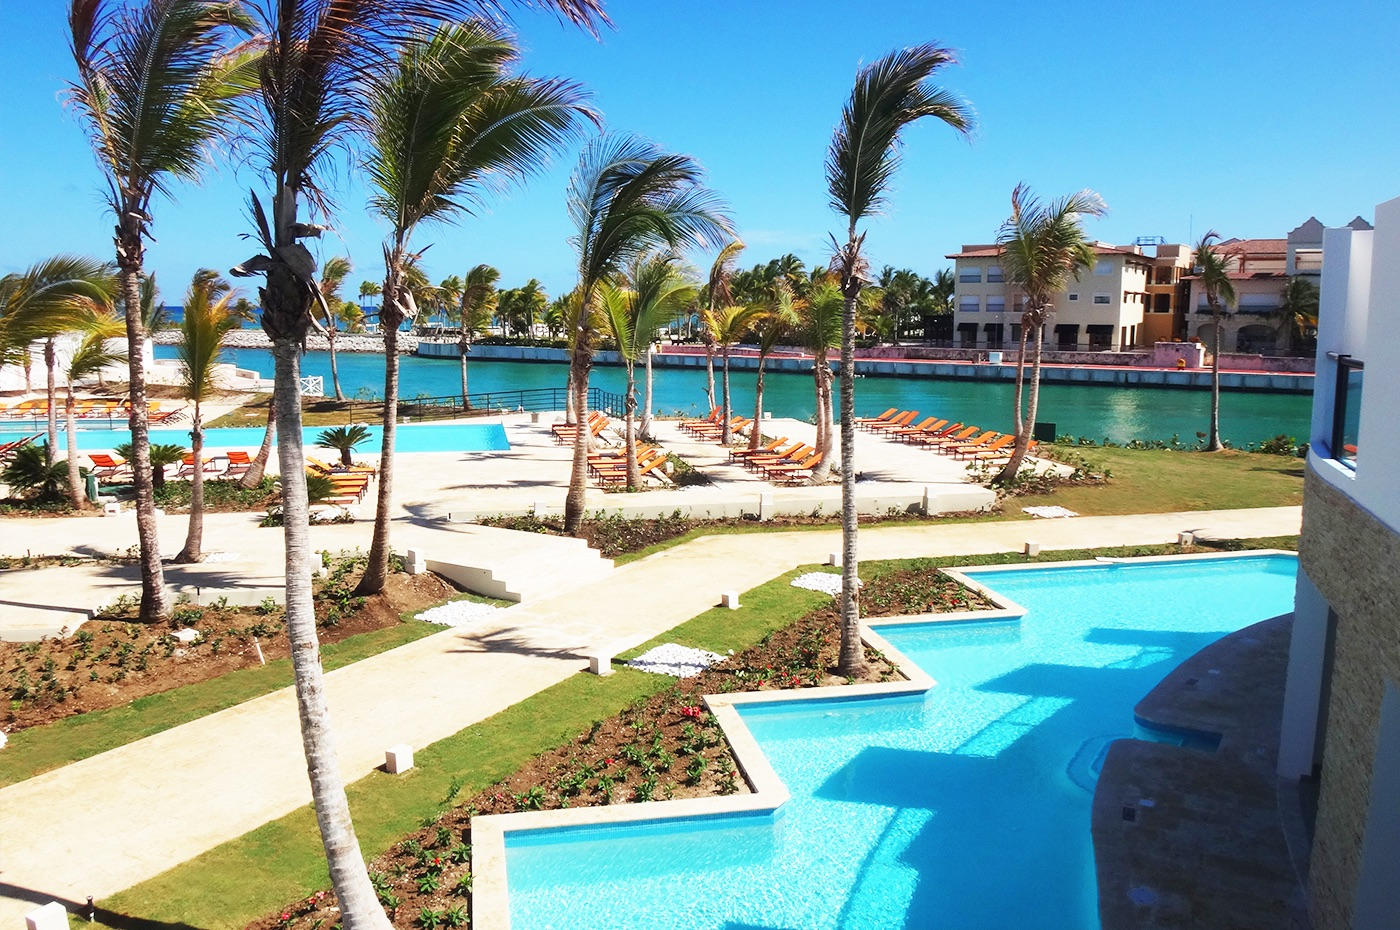 The resort is located near Cap Cana Marina